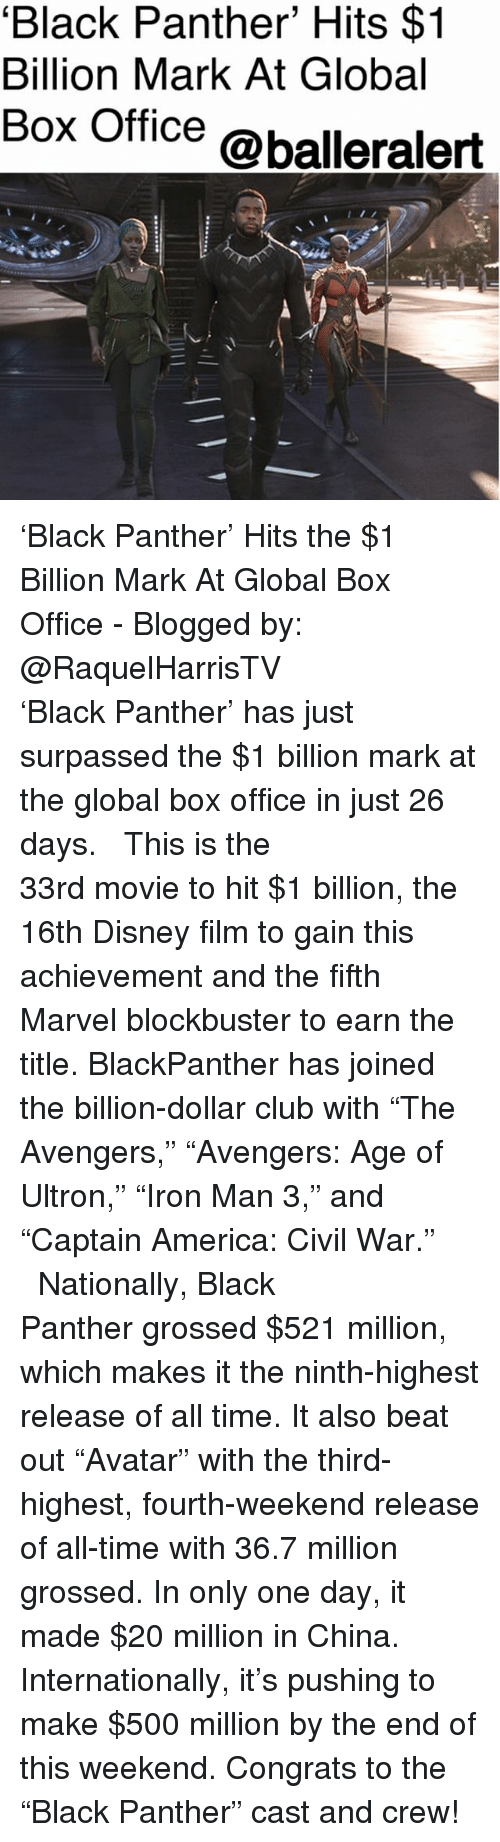 """America, Blockbuster, and Club: 'Black Panther' Hits $1  Billion Mark At Global  Box Office @balleralert 'Black Panther' Hits the $1 Billion Mark At Global Box Office - Blogged by: @RaquelHarrisTV ⠀⠀⠀⠀⠀⠀⠀⠀⠀ ⠀⠀⠀⠀⠀⠀⠀⠀⠀ 'Black Panther' has just surpassed the $1 billion mark at the global box office in just 26 days. ⠀⠀⠀⠀⠀⠀⠀⠀⠀ ⠀⠀⠀⠀⠀⠀⠀⠀⠀ This is the 33rd movie to hit $1 billion, the 16th Disney film to gain this achievement and the fifth Marvel blockbuster to earn the title. BlackPanther has joined the billion-dollar club with """"The Avengers,"""" """"Avengers: Age of Ultron,"""" """"Iron Man 3,"""" and """"Captain America: Civil War."""" ⠀⠀⠀⠀⠀⠀⠀⠀⠀ ⠀⠀⠀⠀⠀⠀⠀⠀⠀ Nationally, Black Panther grossed $521 million, which makes it the ninth-highest release of all time. It also beat out """"Avatar"""" with the third-highest, fourth-weekend release of all-time with 36.7 million grossed. In only one day, it made $20 million in China. Internationally, it's pushing to make $500 million by the end of this weekend. Congrats to the """"Black Panther"""" cast and crew!"""